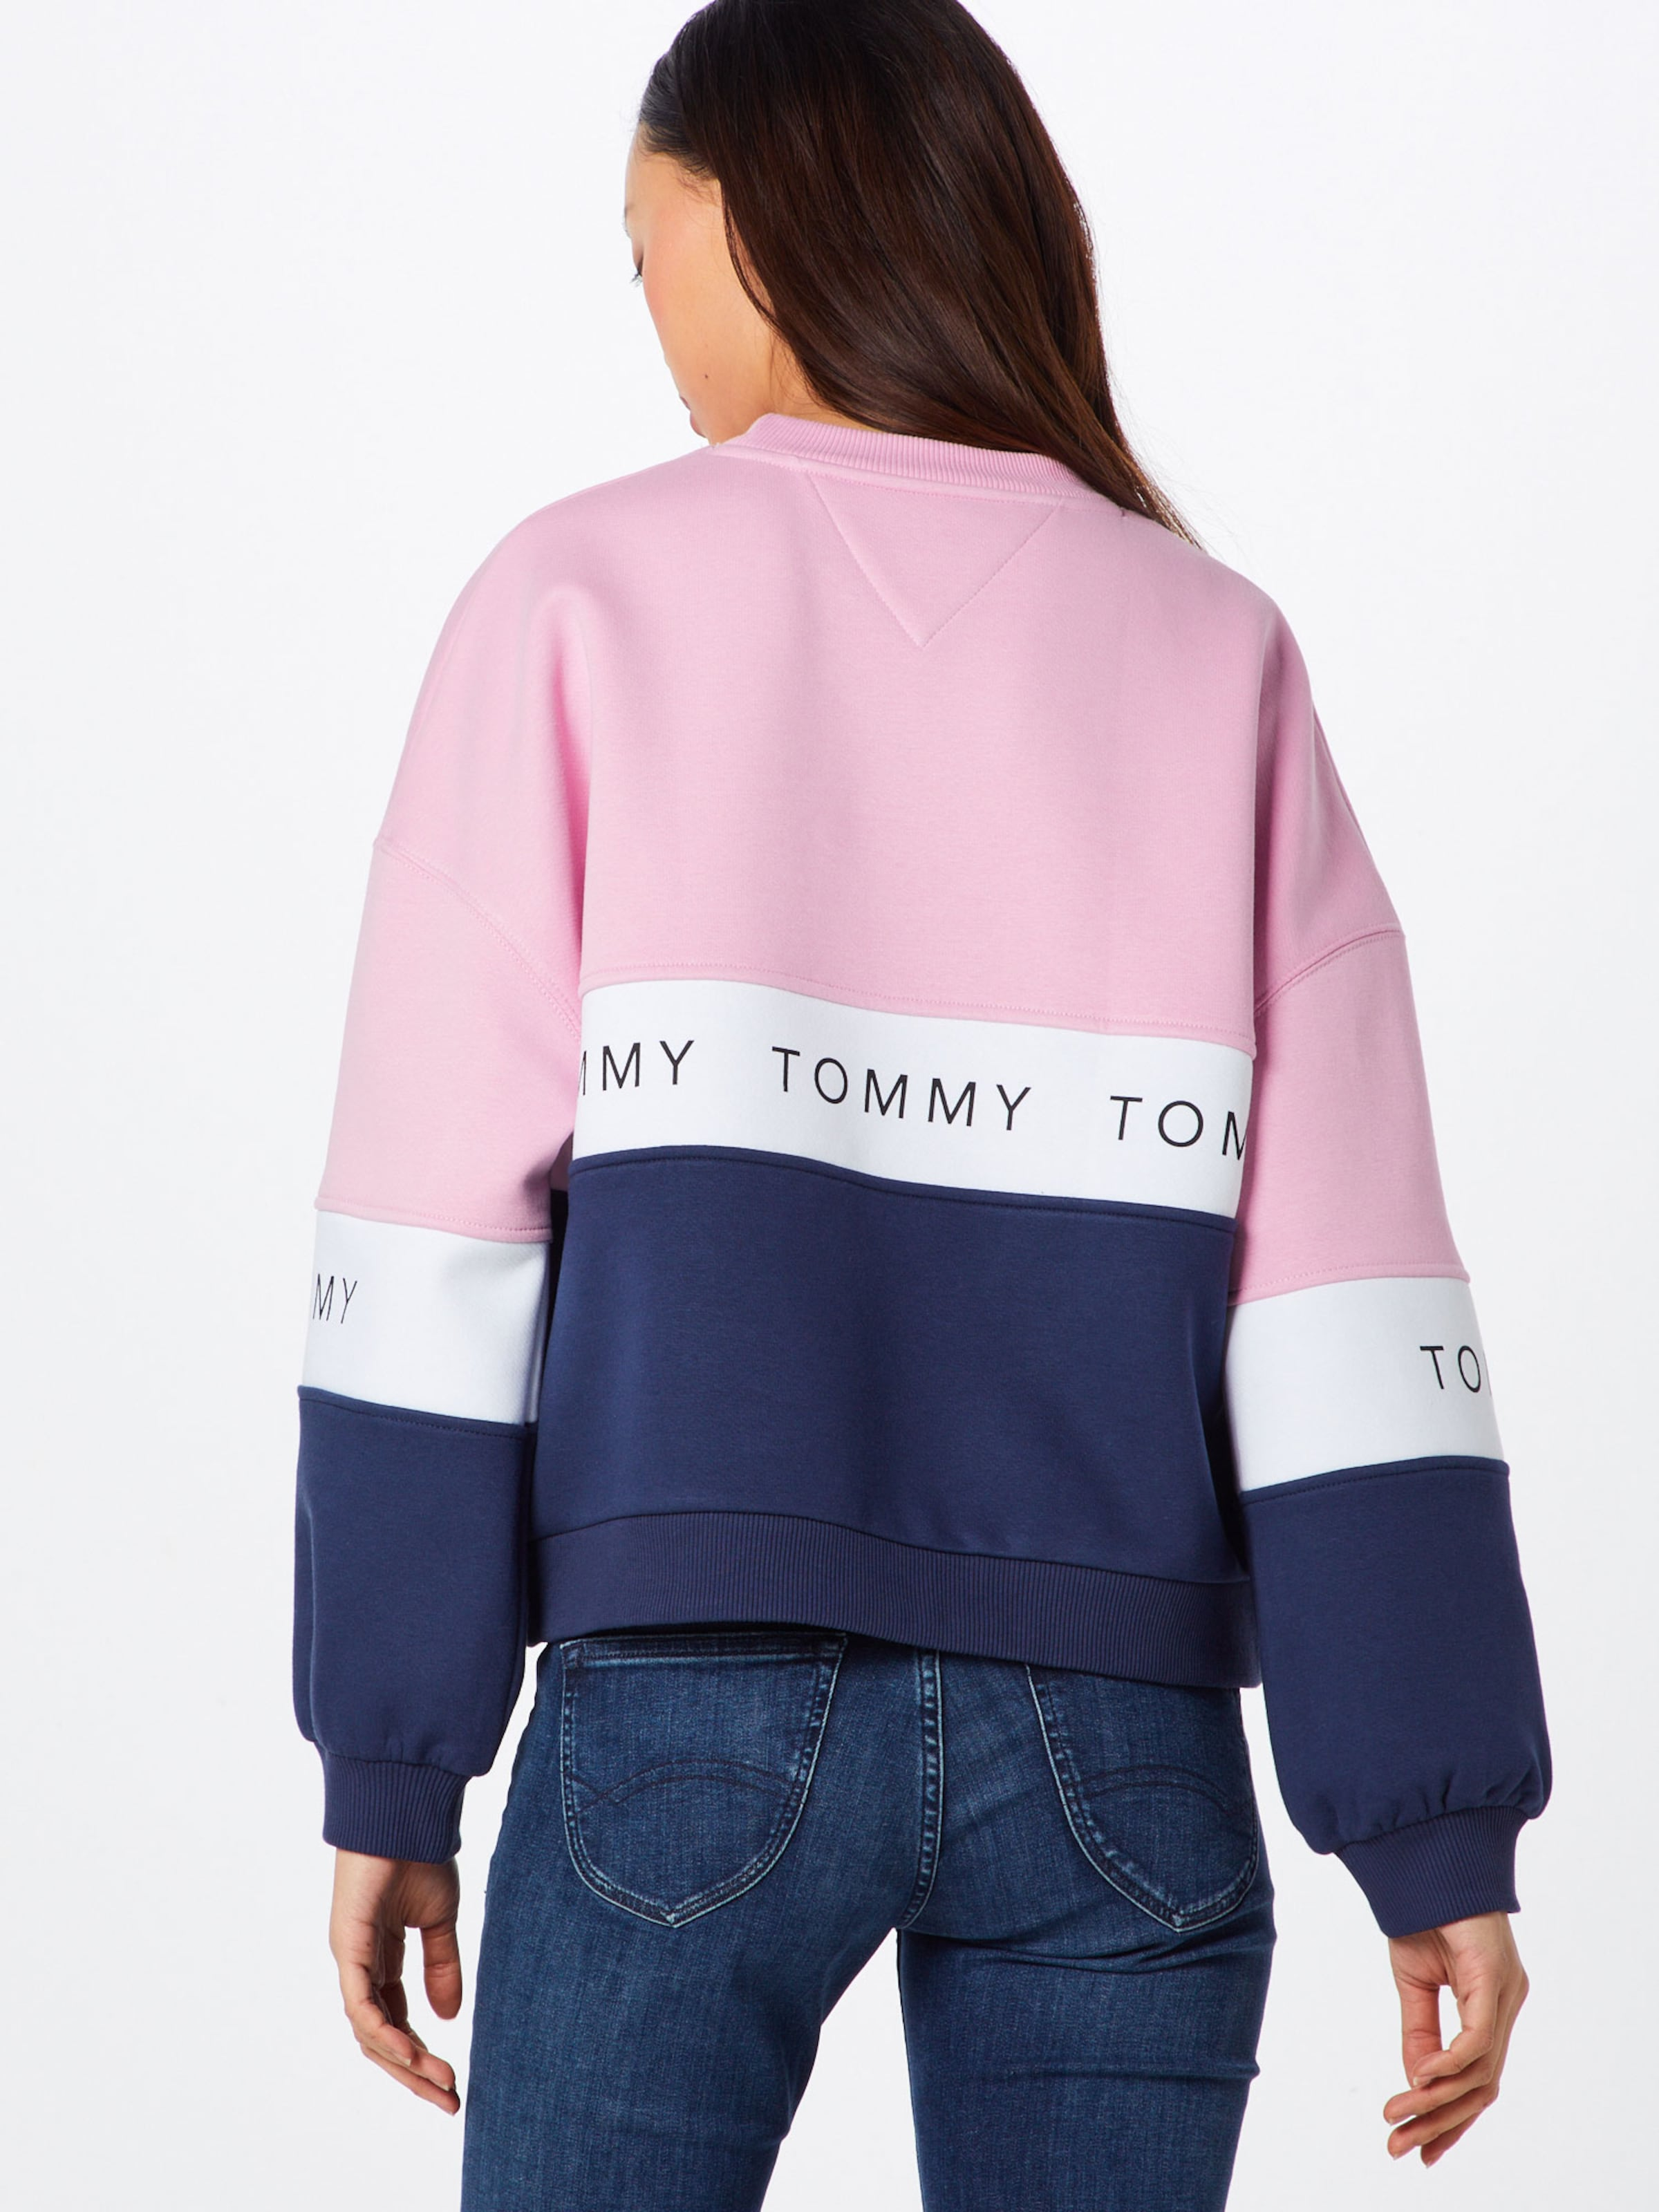 Blanc 'tjw Tommy shirt Colorblock' En Bleu Jeans Sweat MarineRose PXiZuOwkT